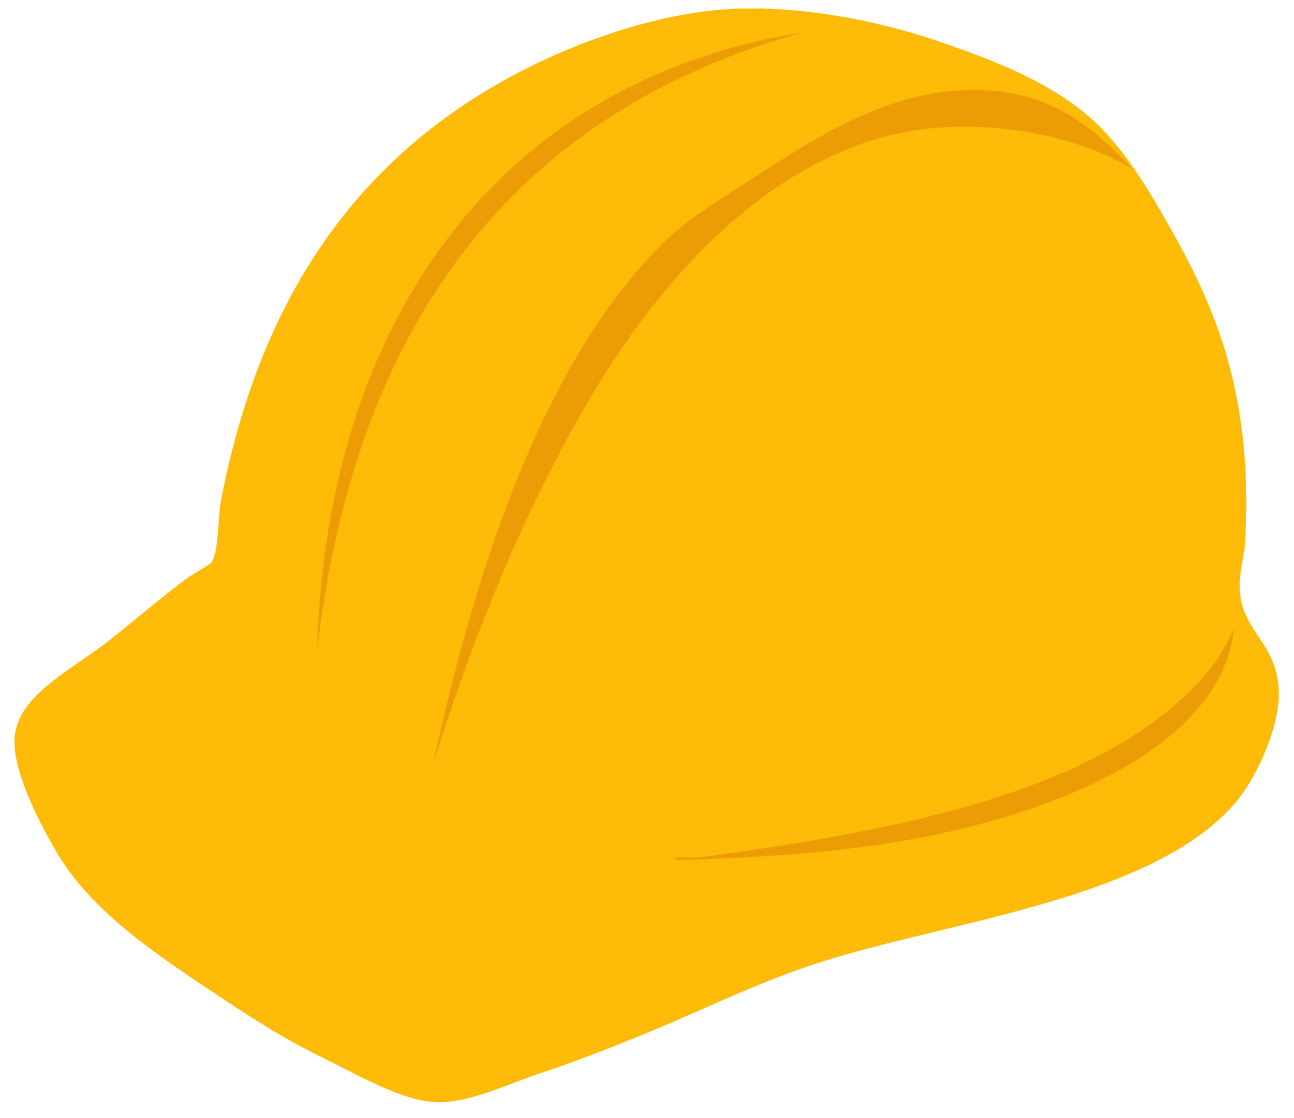 9 Hard Hat Icon Images